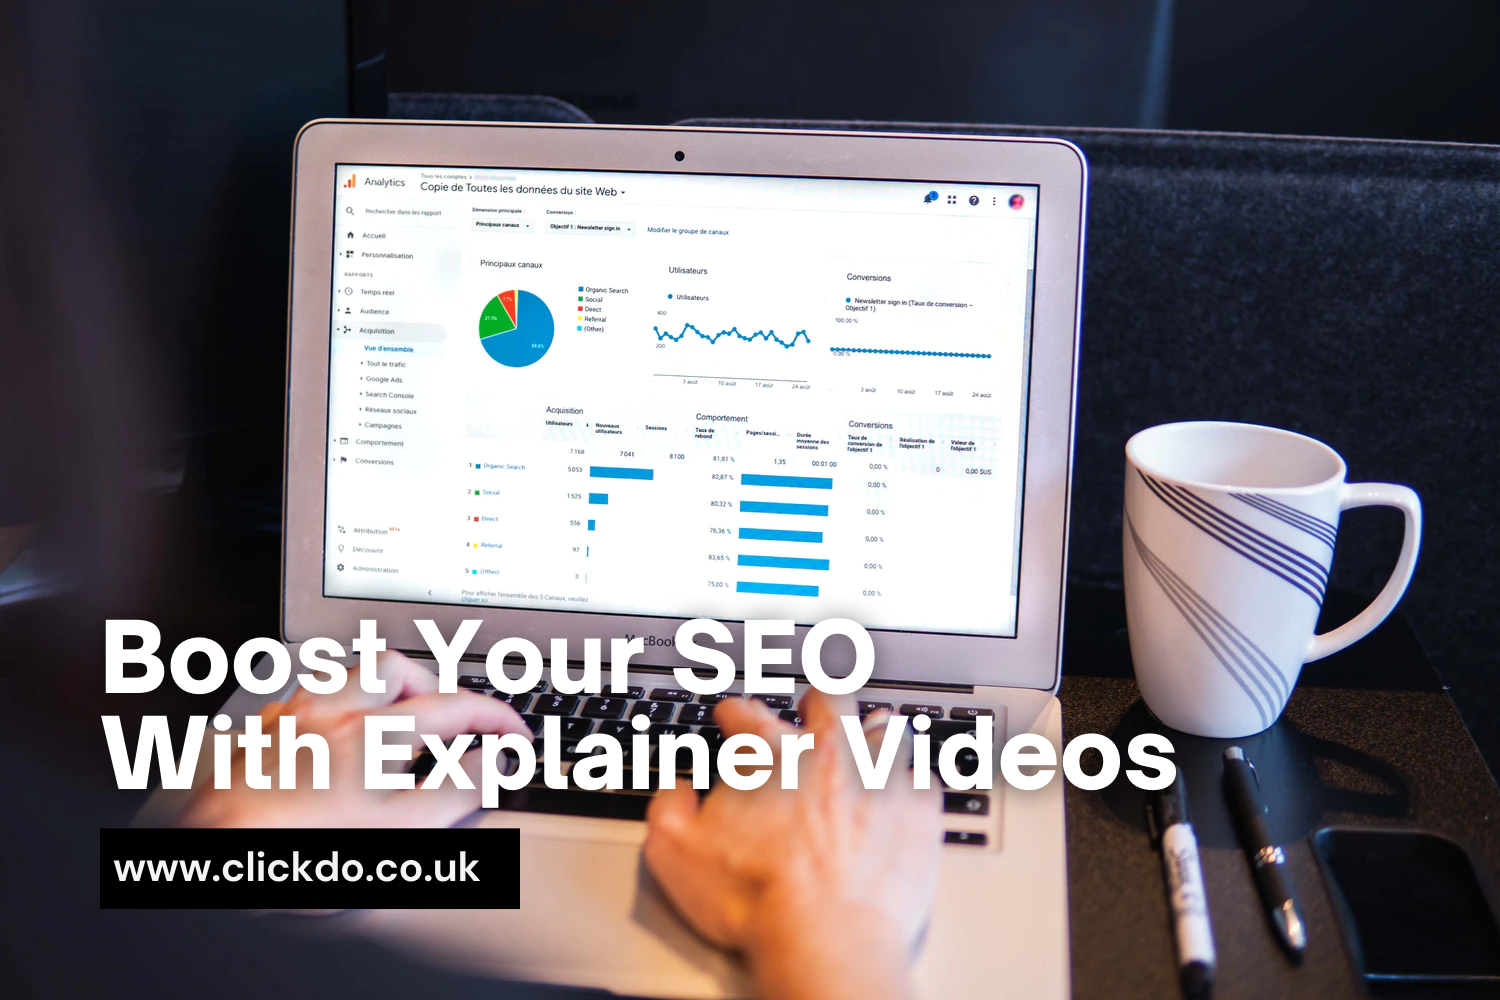 6 Essential Tips to Boost Your SEO With Explainer Videos